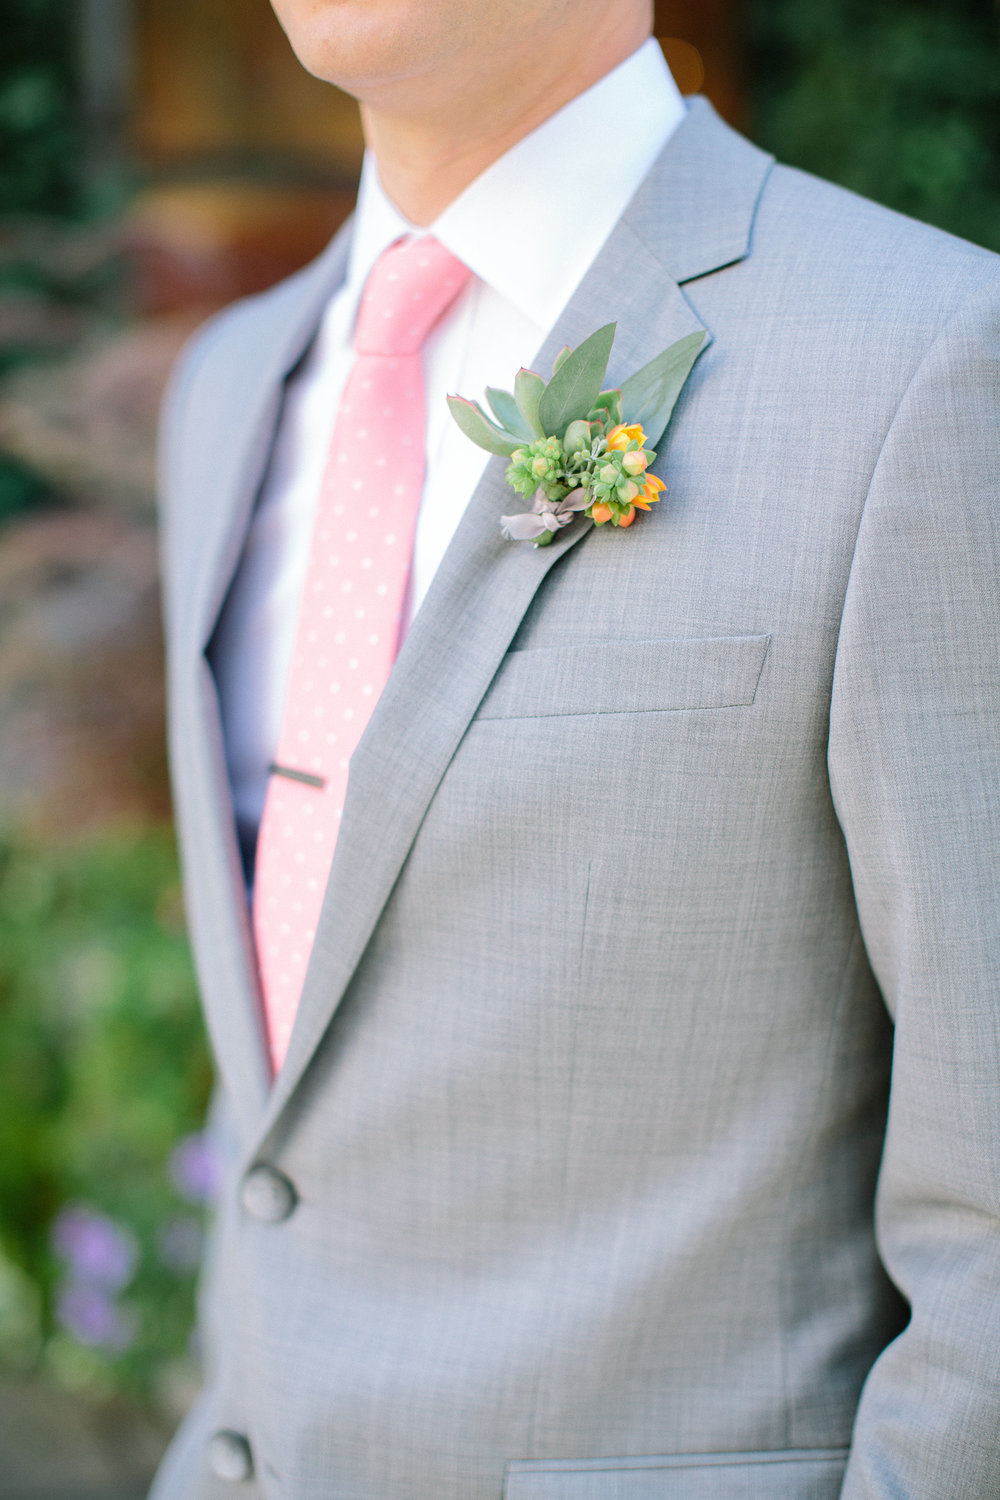 Eucalyptus and orinthagalum boutonniere